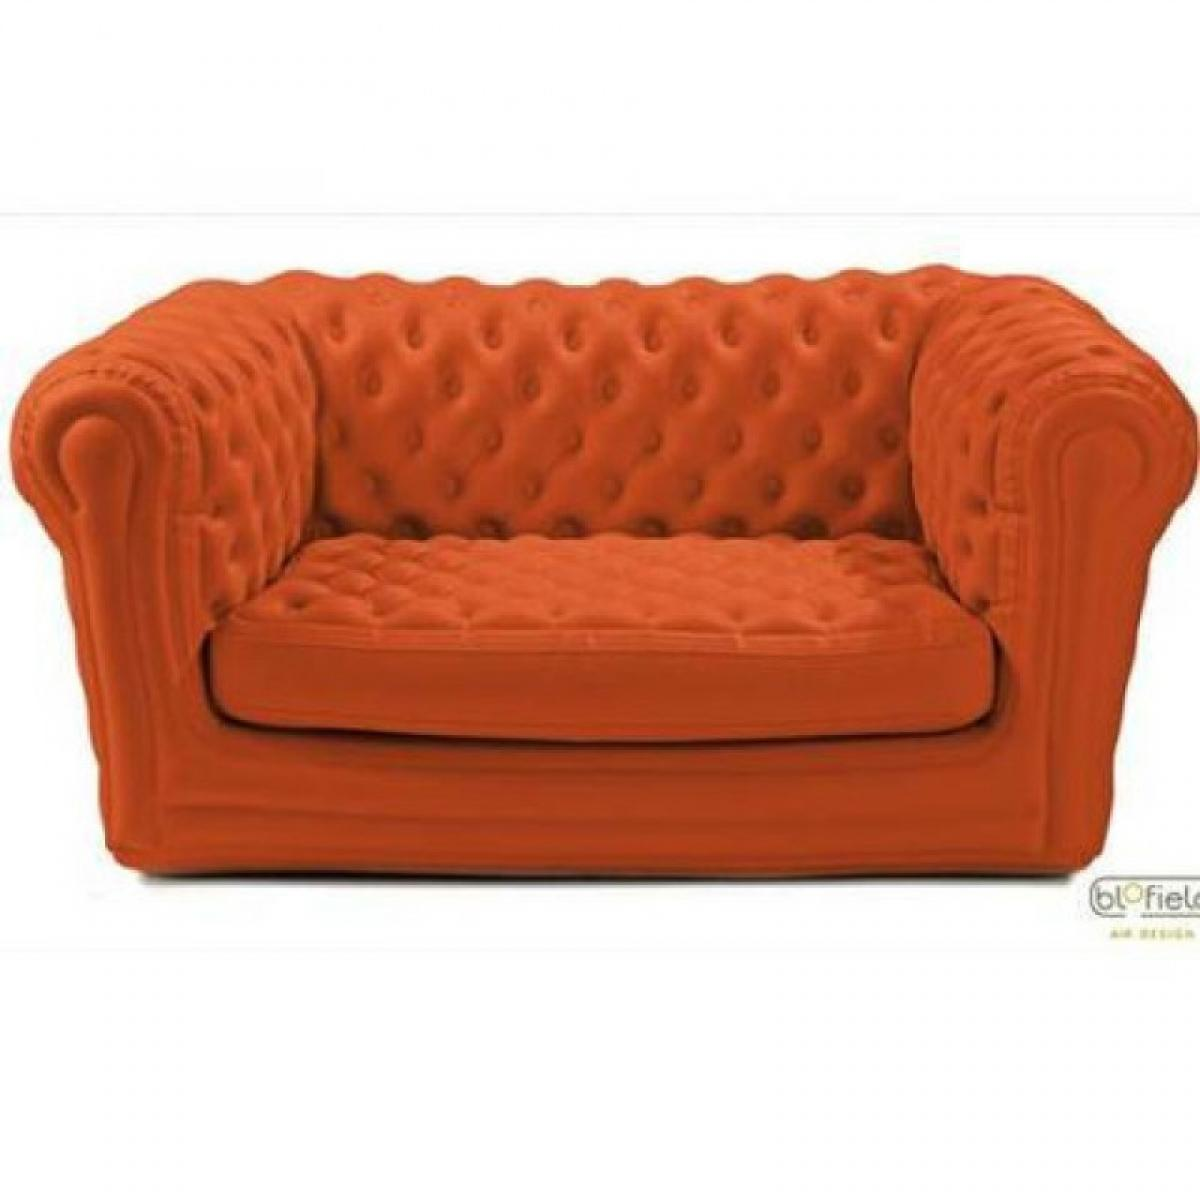 Photos canap gonflable - Canape gonflable chesterfield ...